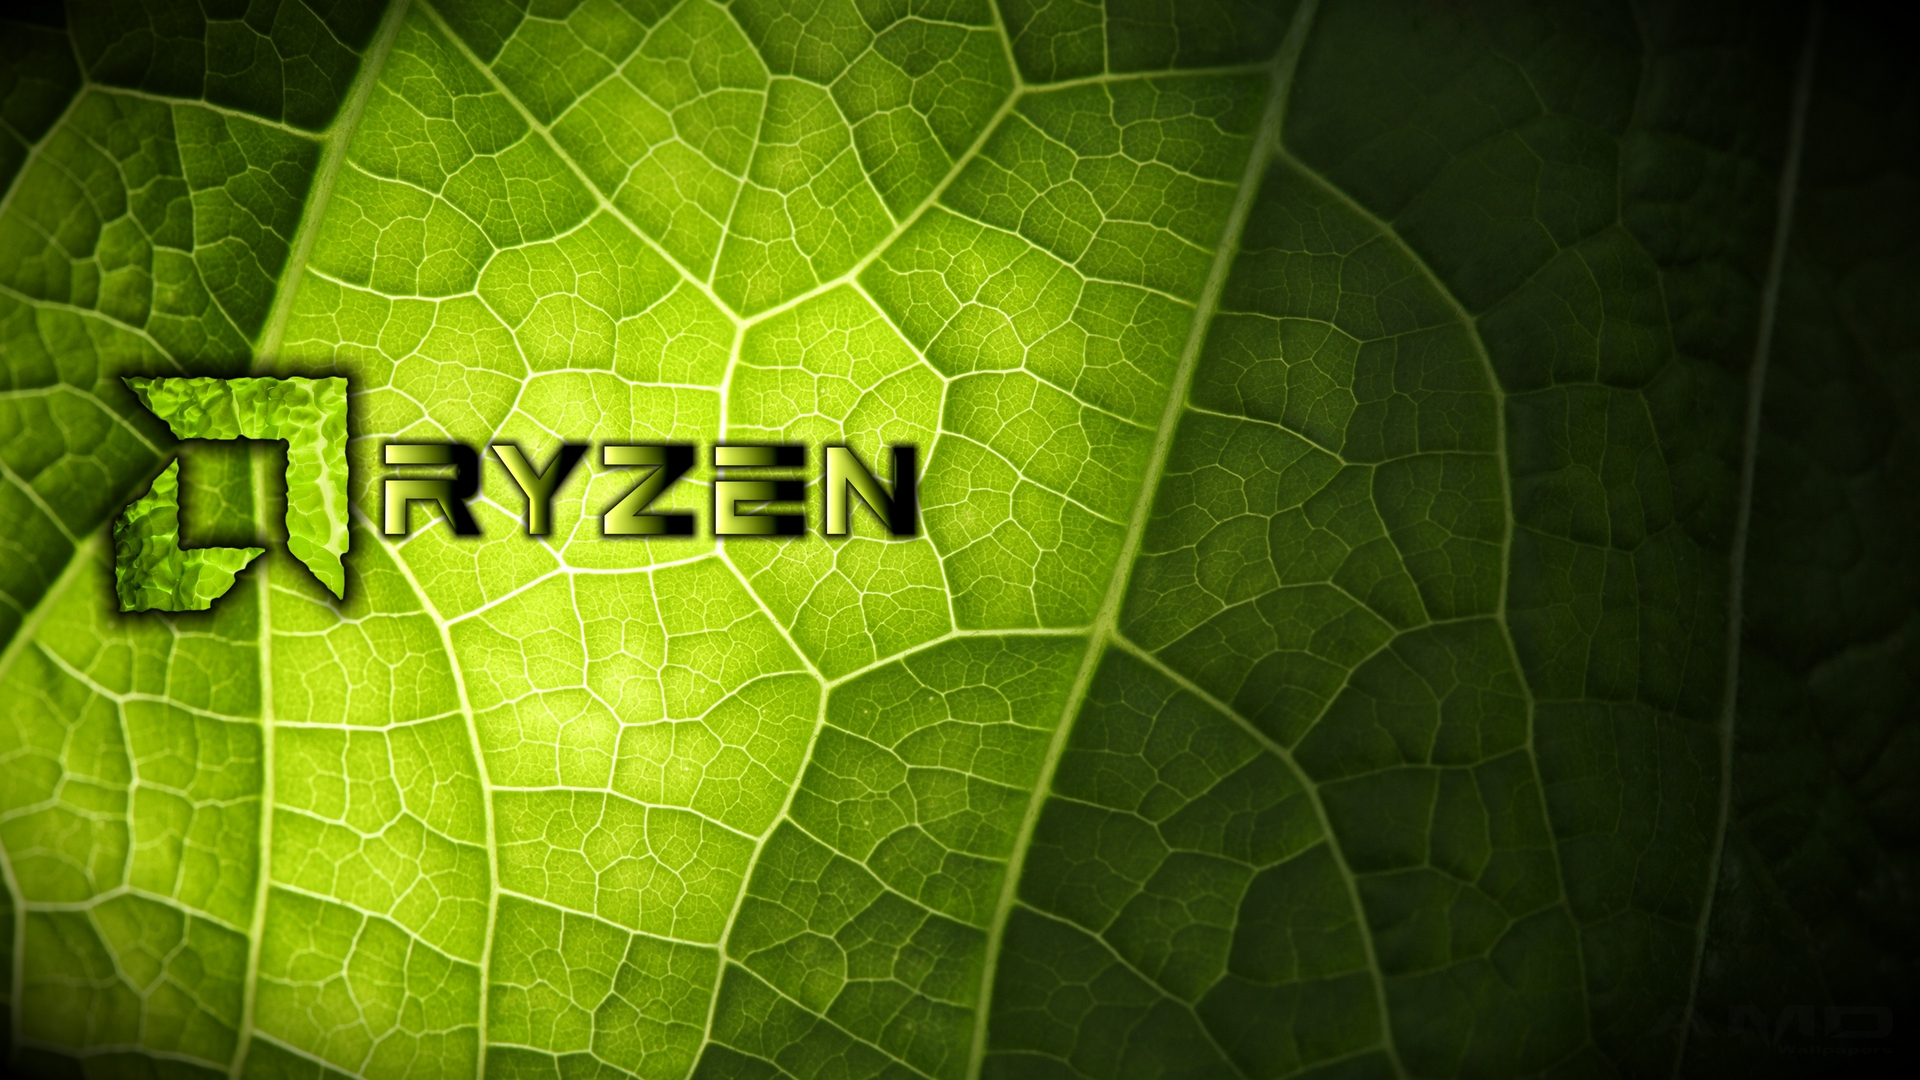 4K_HD_AMD_Ryzen_Green_Leaf_wallpaper.jpg